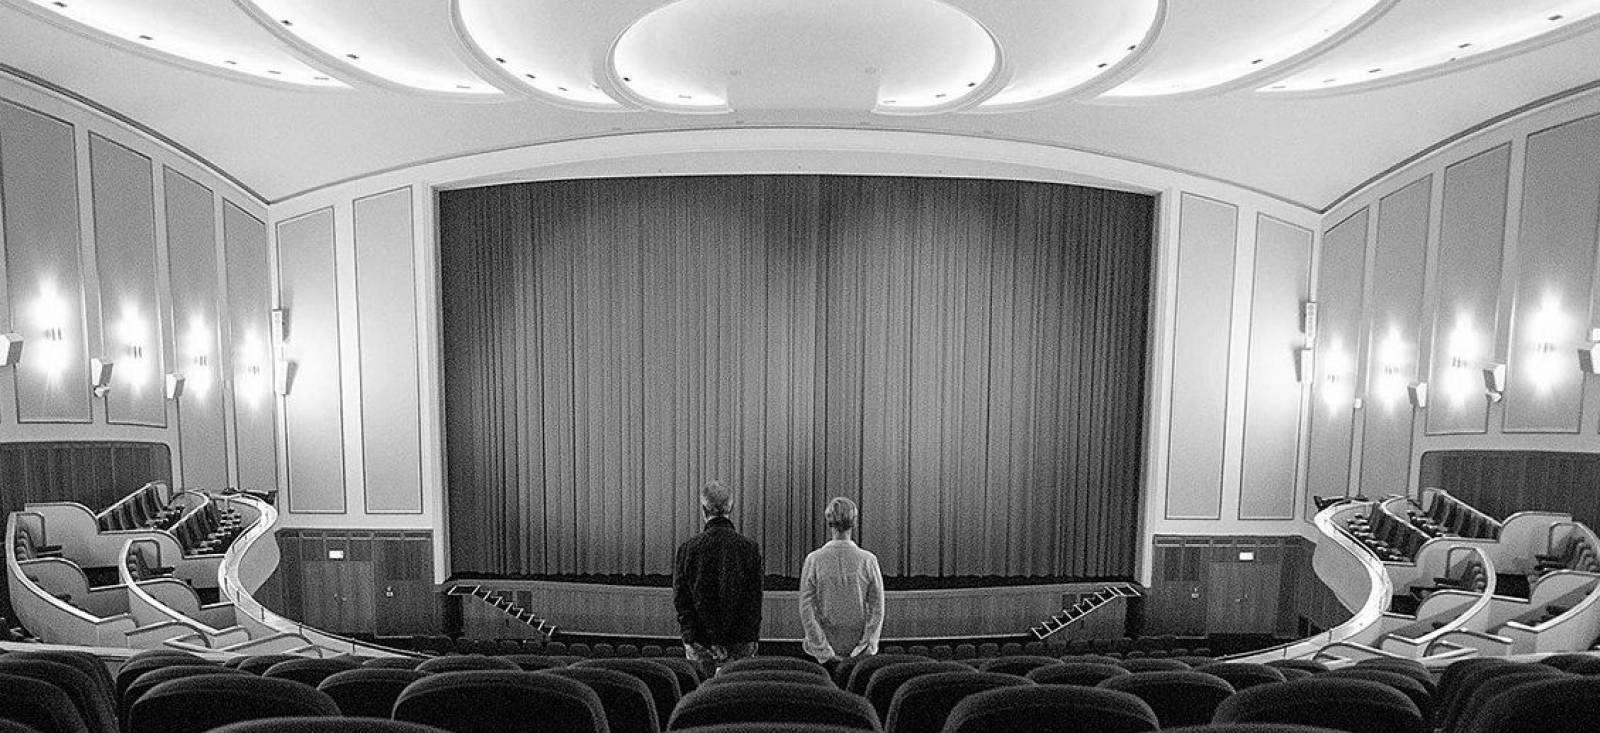 800 TIMES LONELY – ONE DAY WITH GERMAN FILMMAKER EDGAR REITZ